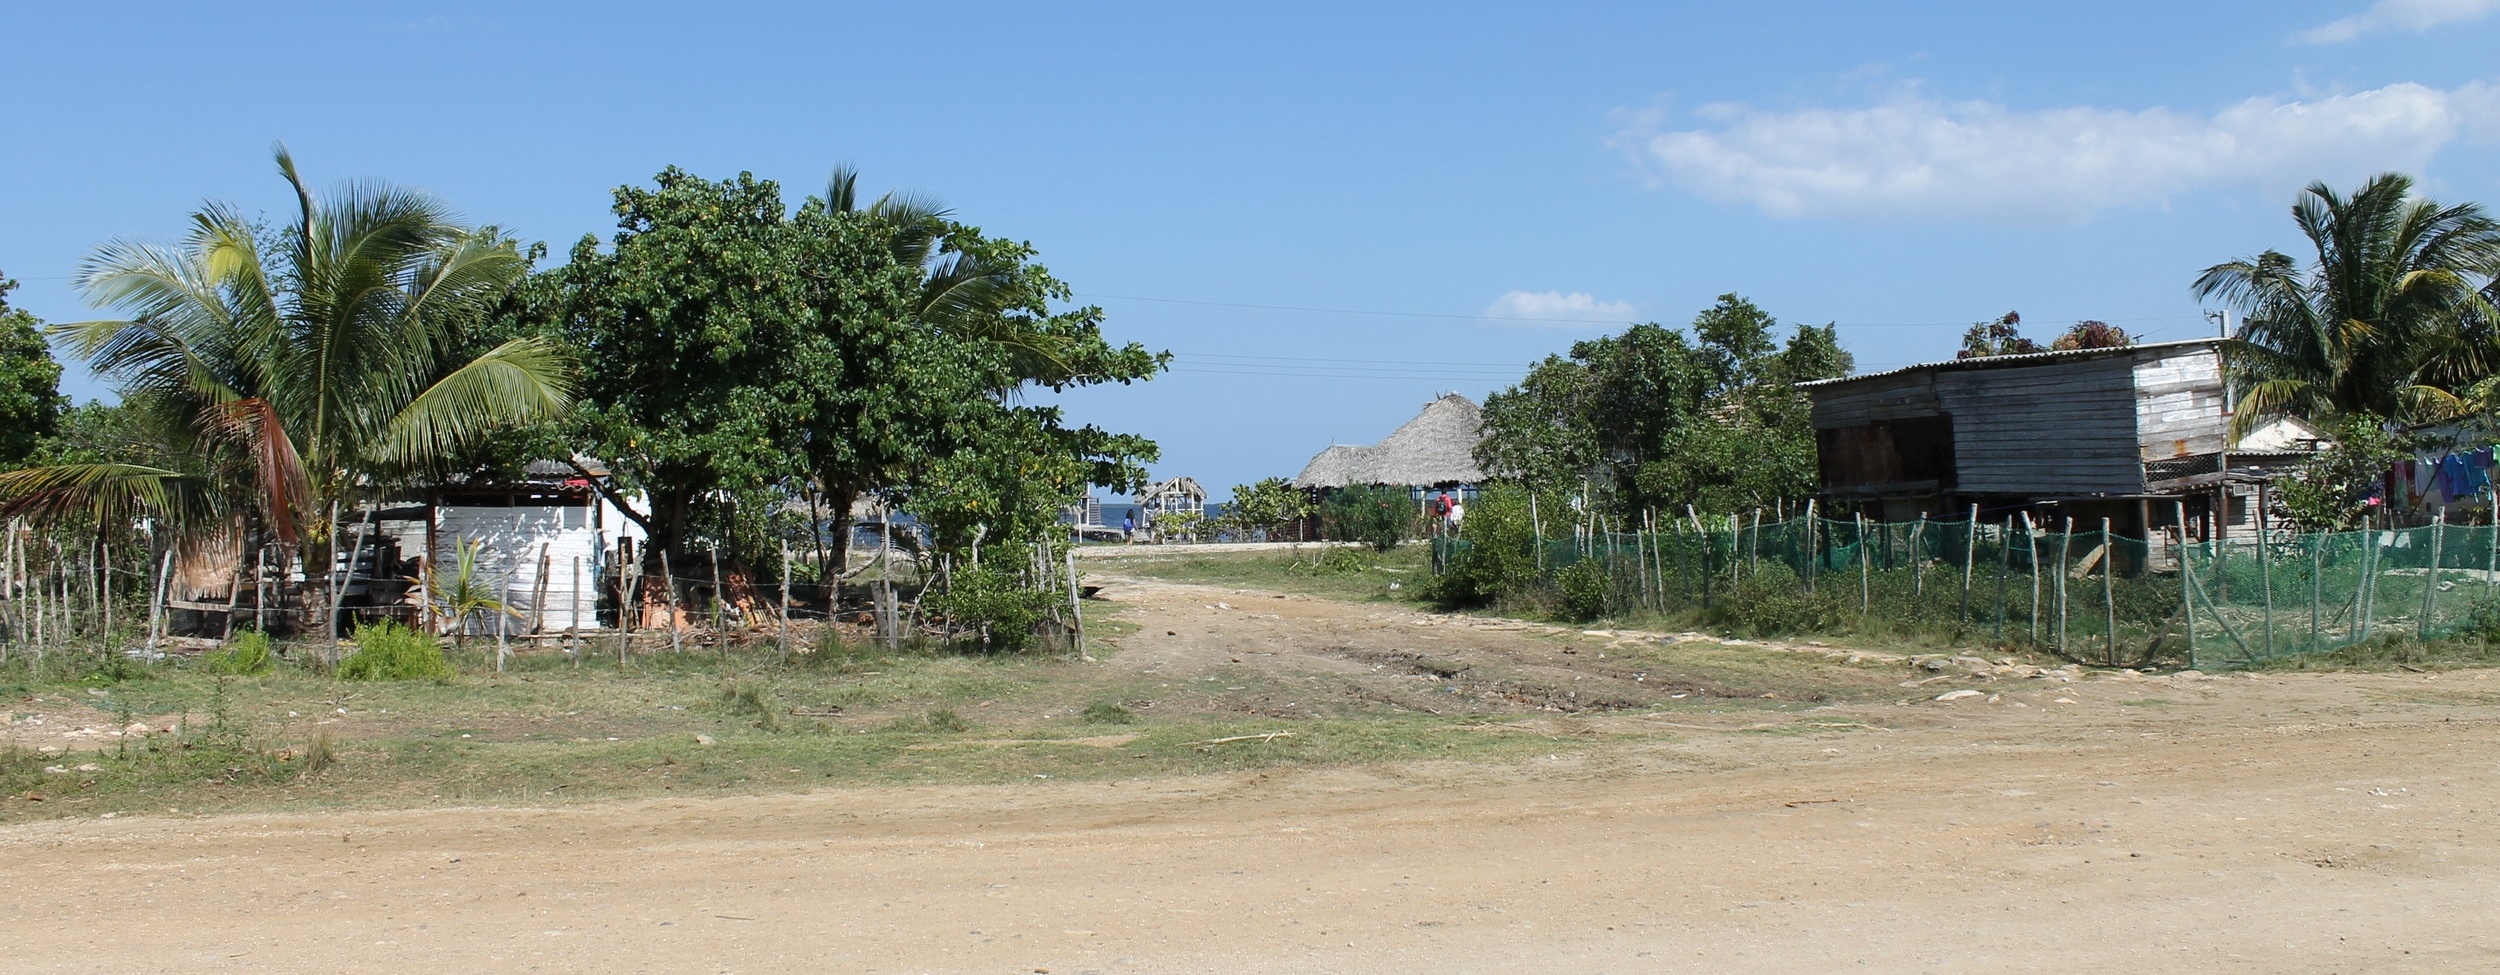 Recent constructions on stilts in Cuba.Photo by Mamed Muffak.